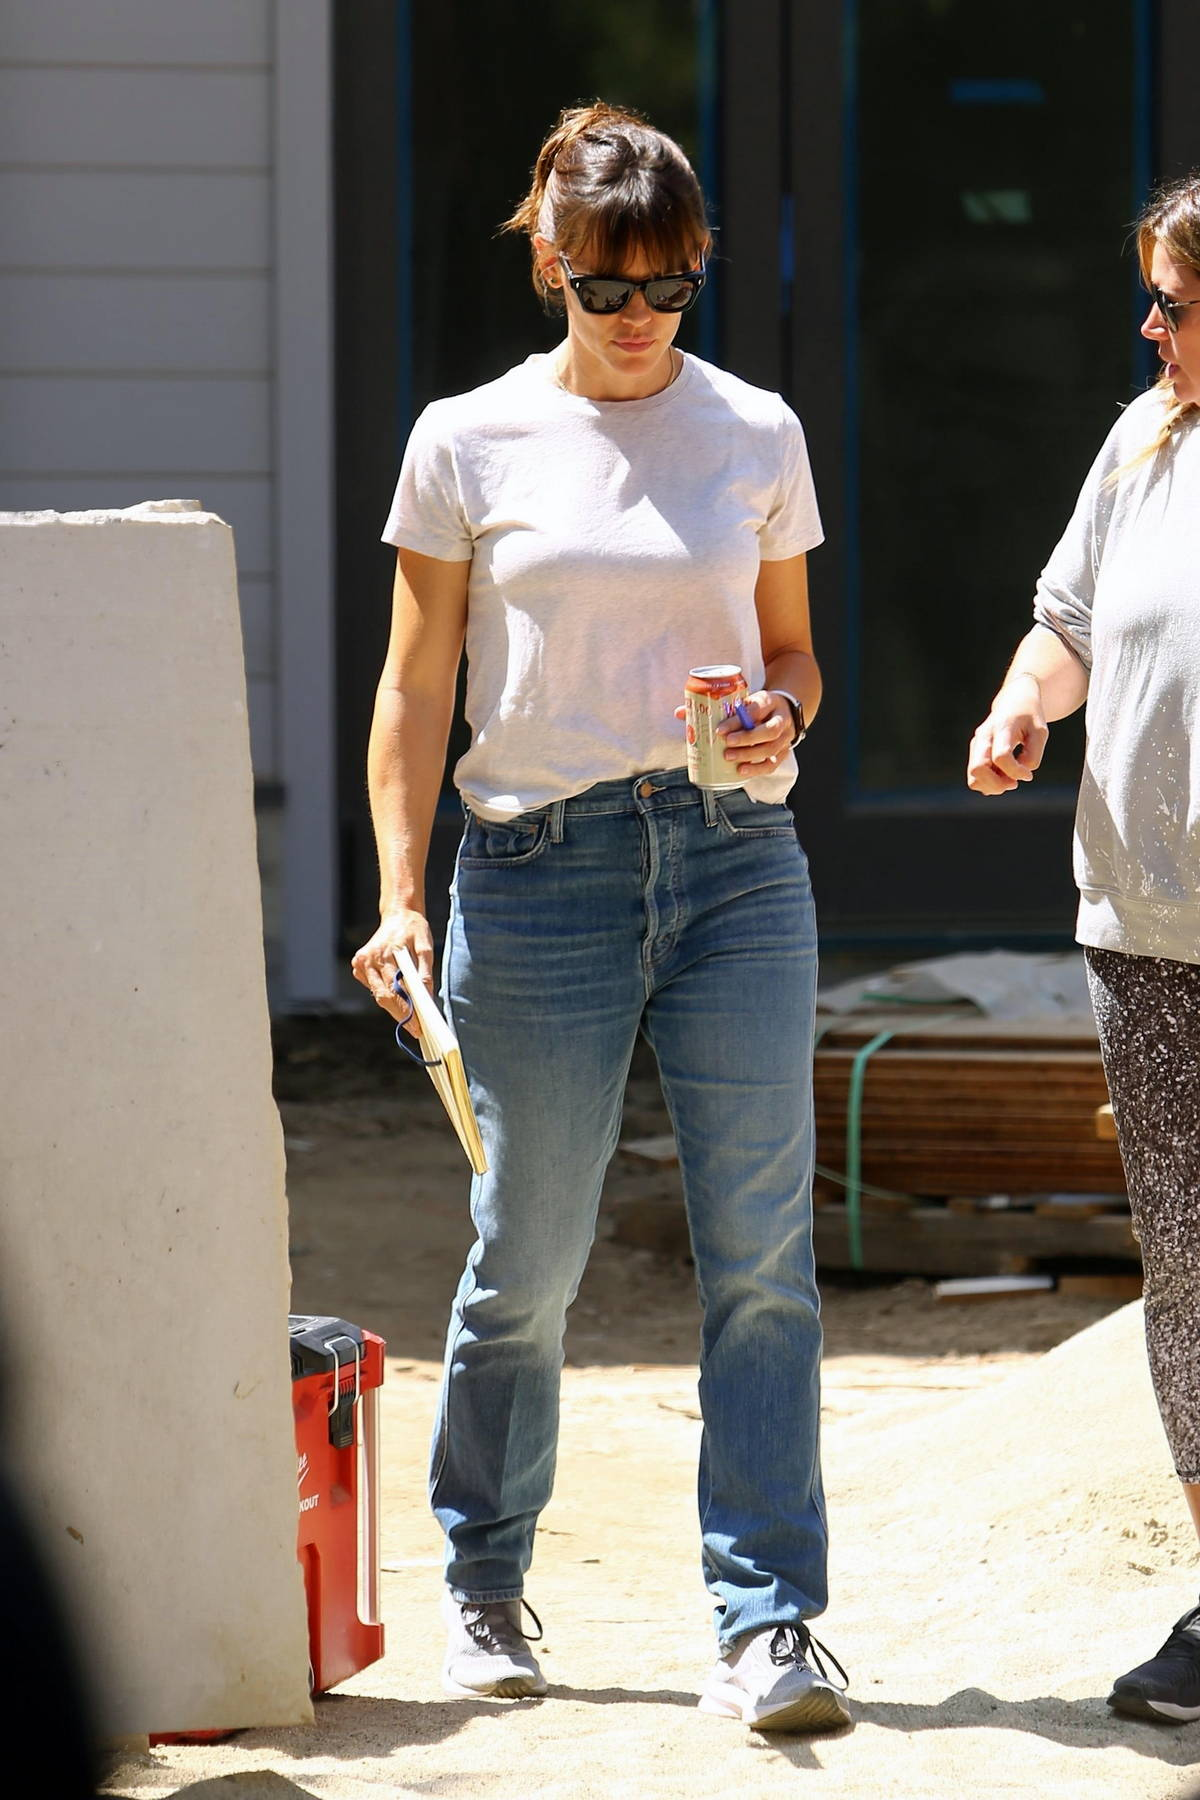 Jennifer Garner keeps it casual while checking in on her house under construction in Brentwood, California